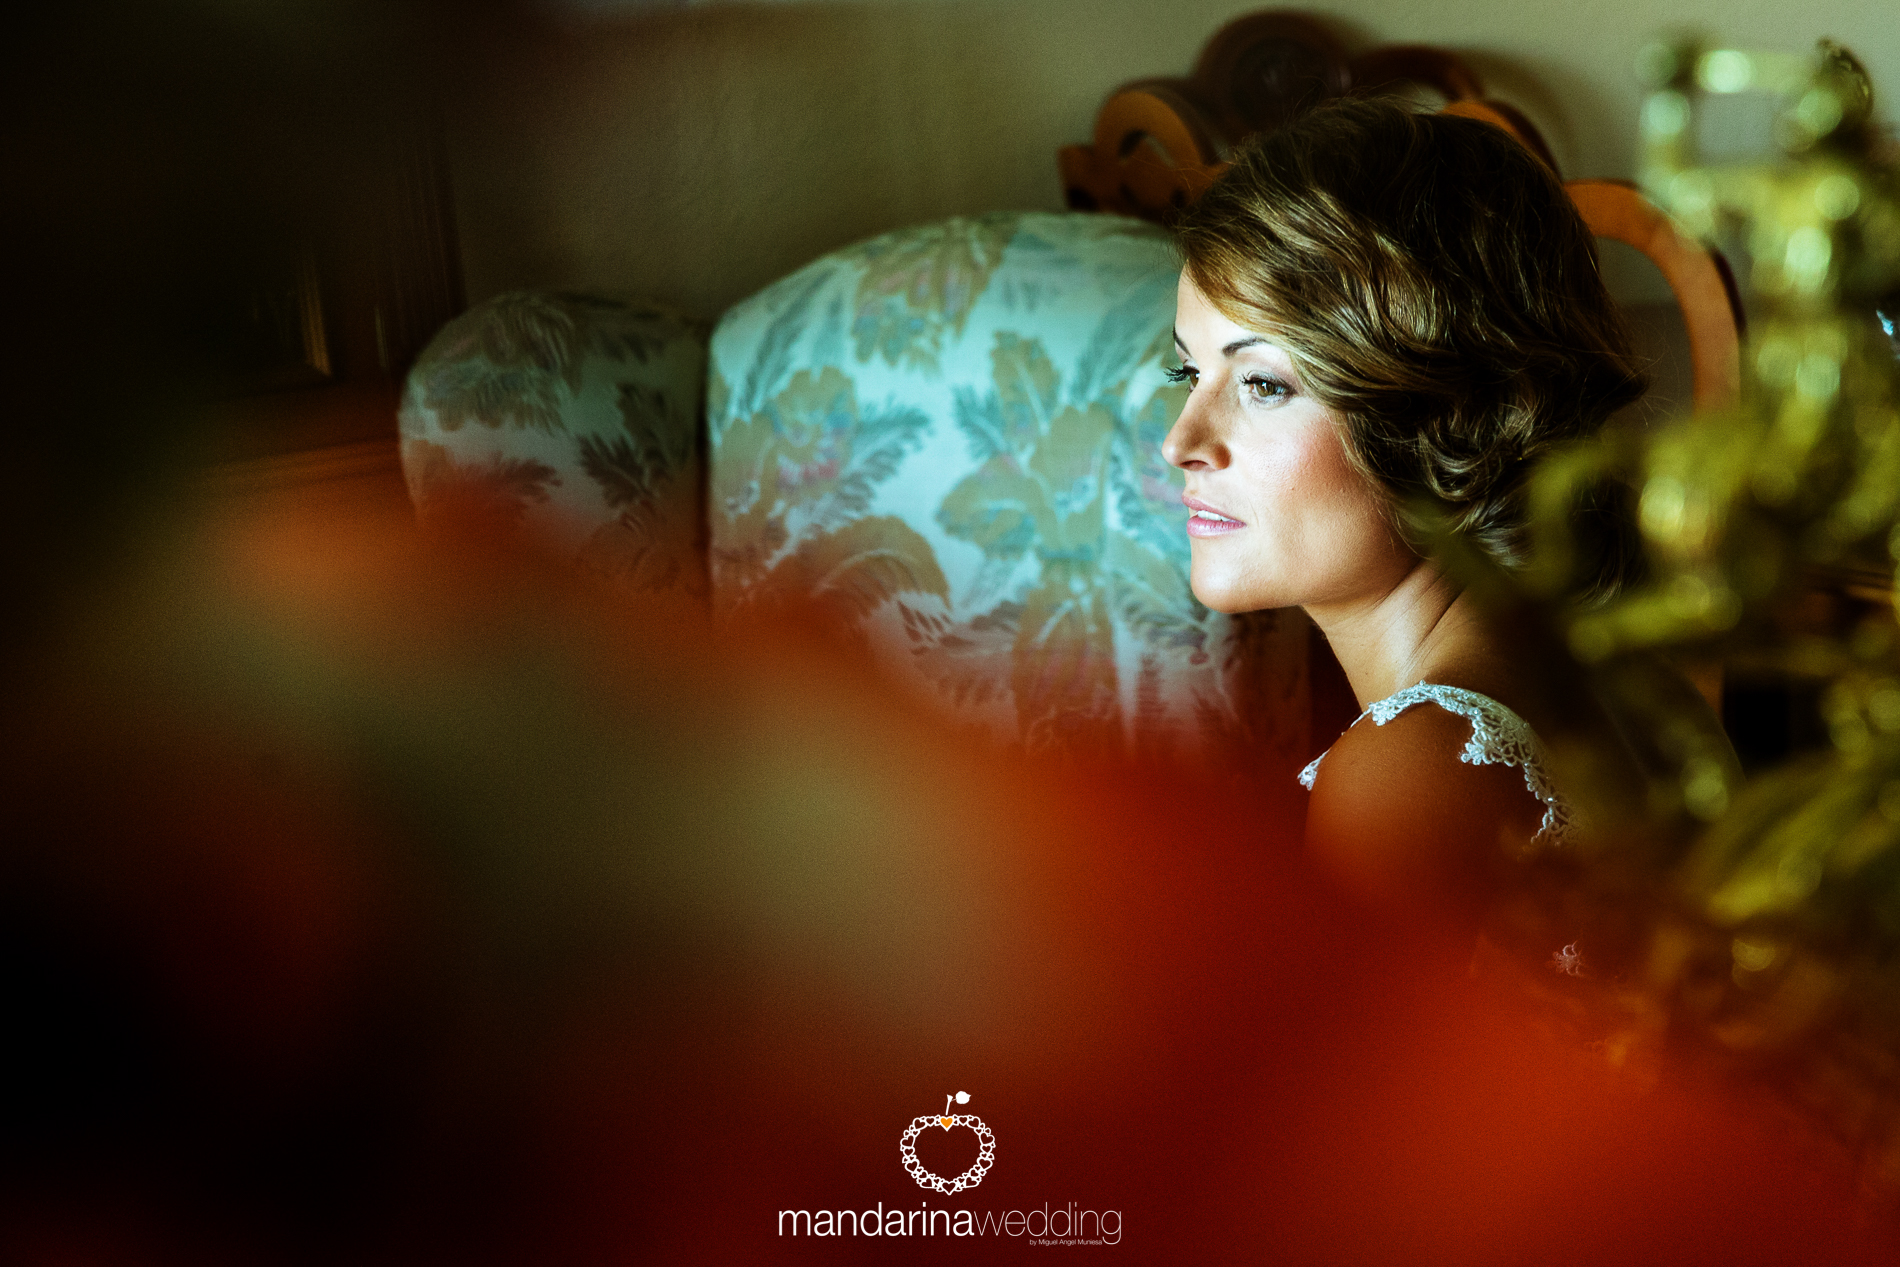 mandarina wedding_12